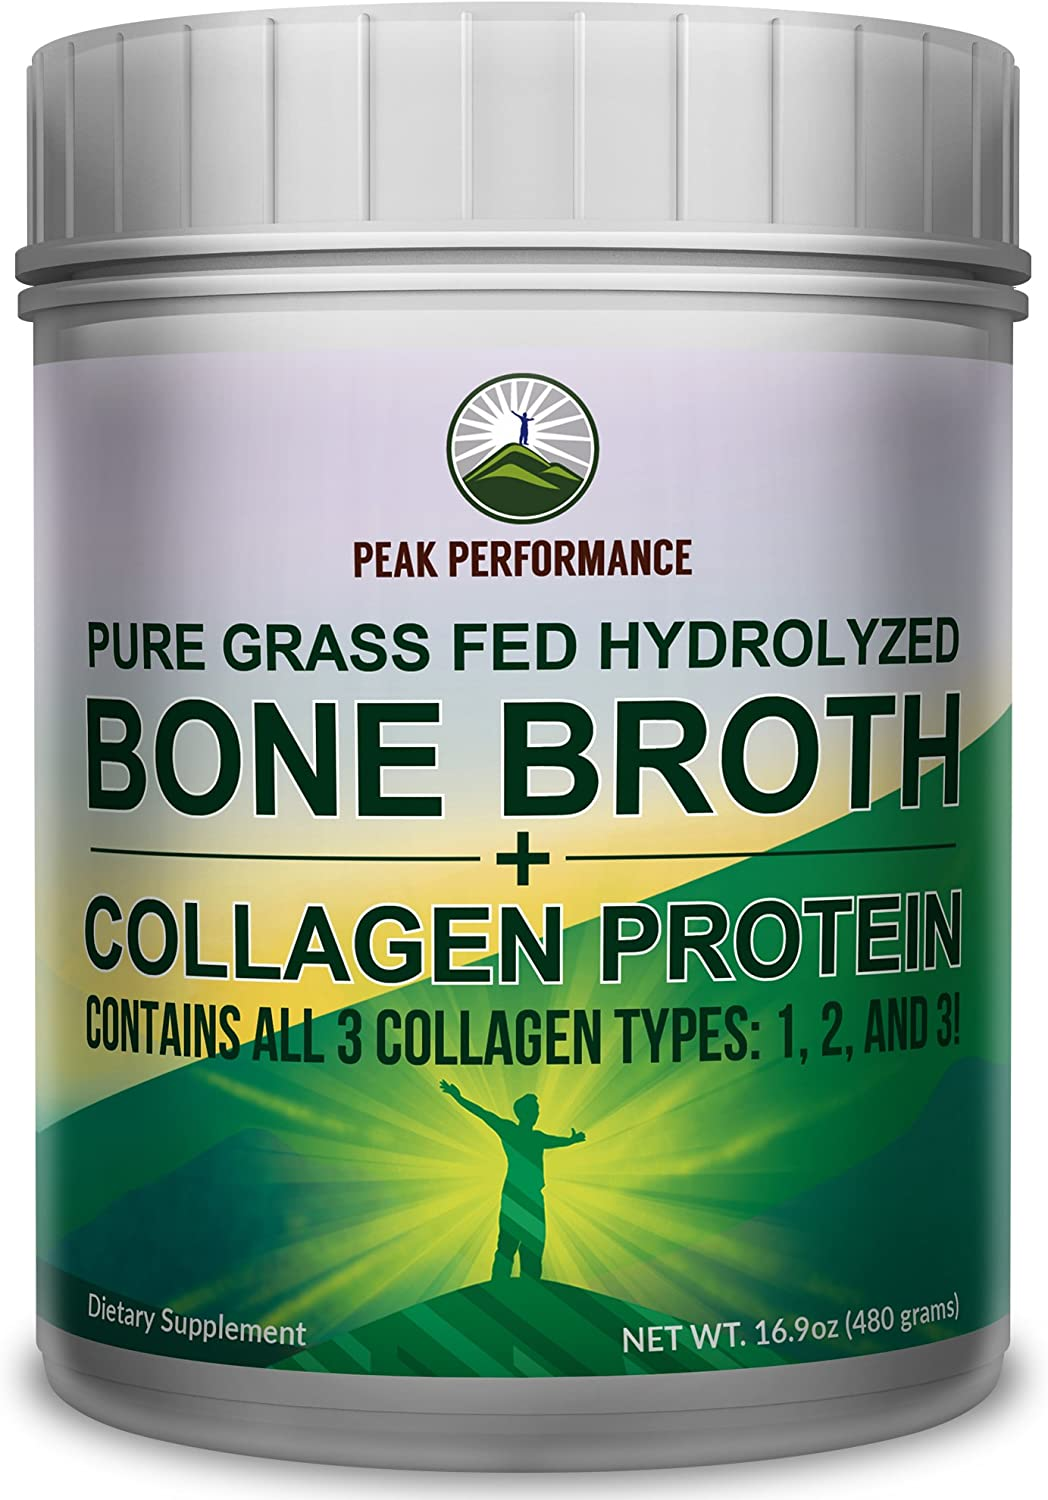 Hydrolyzed Bone Broth and Collagen Unflavored Protein Peptides Powder by Peak Performance. Contains All Collagen Types: 1, 2, and 3. Pure Pasture, Raised Grass Fed, Paleo Friendly, Gluten + Dairy Free